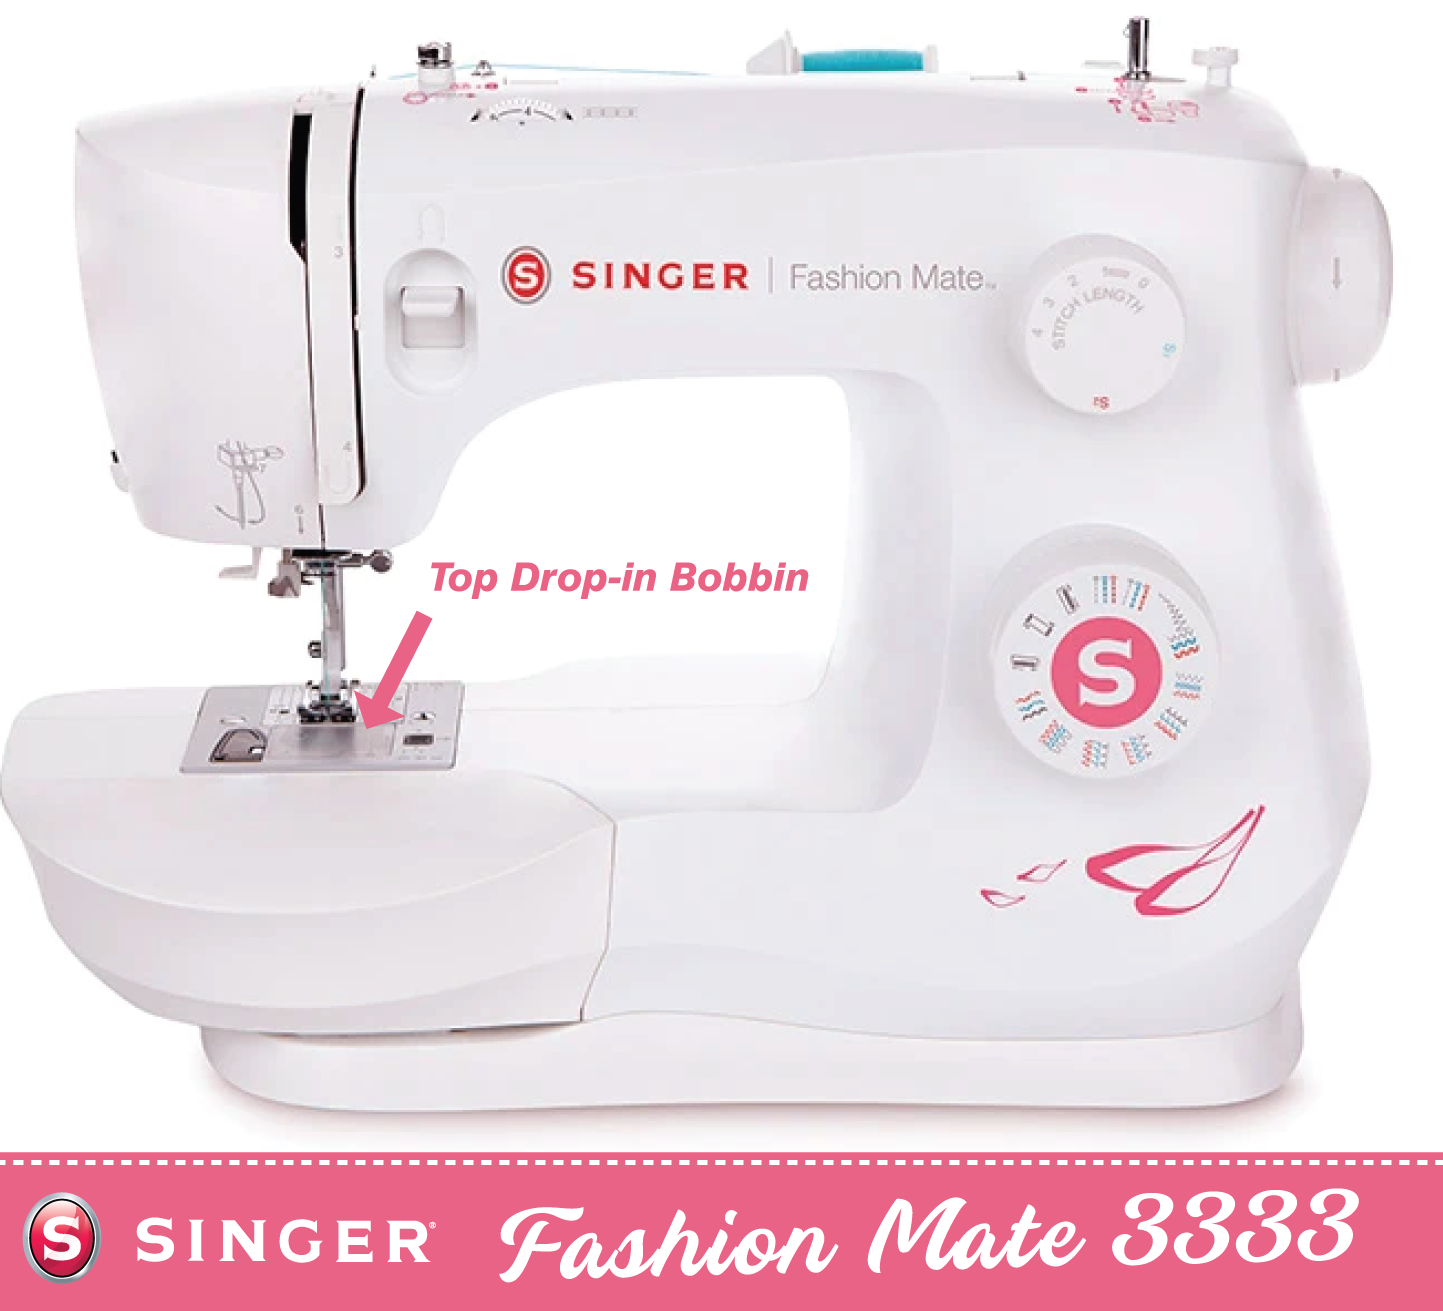 Singer Fashion Mate 3333 with Auto needle threader and Drop and Sew bobbin - Strong metal frame. Preorder for November delivery